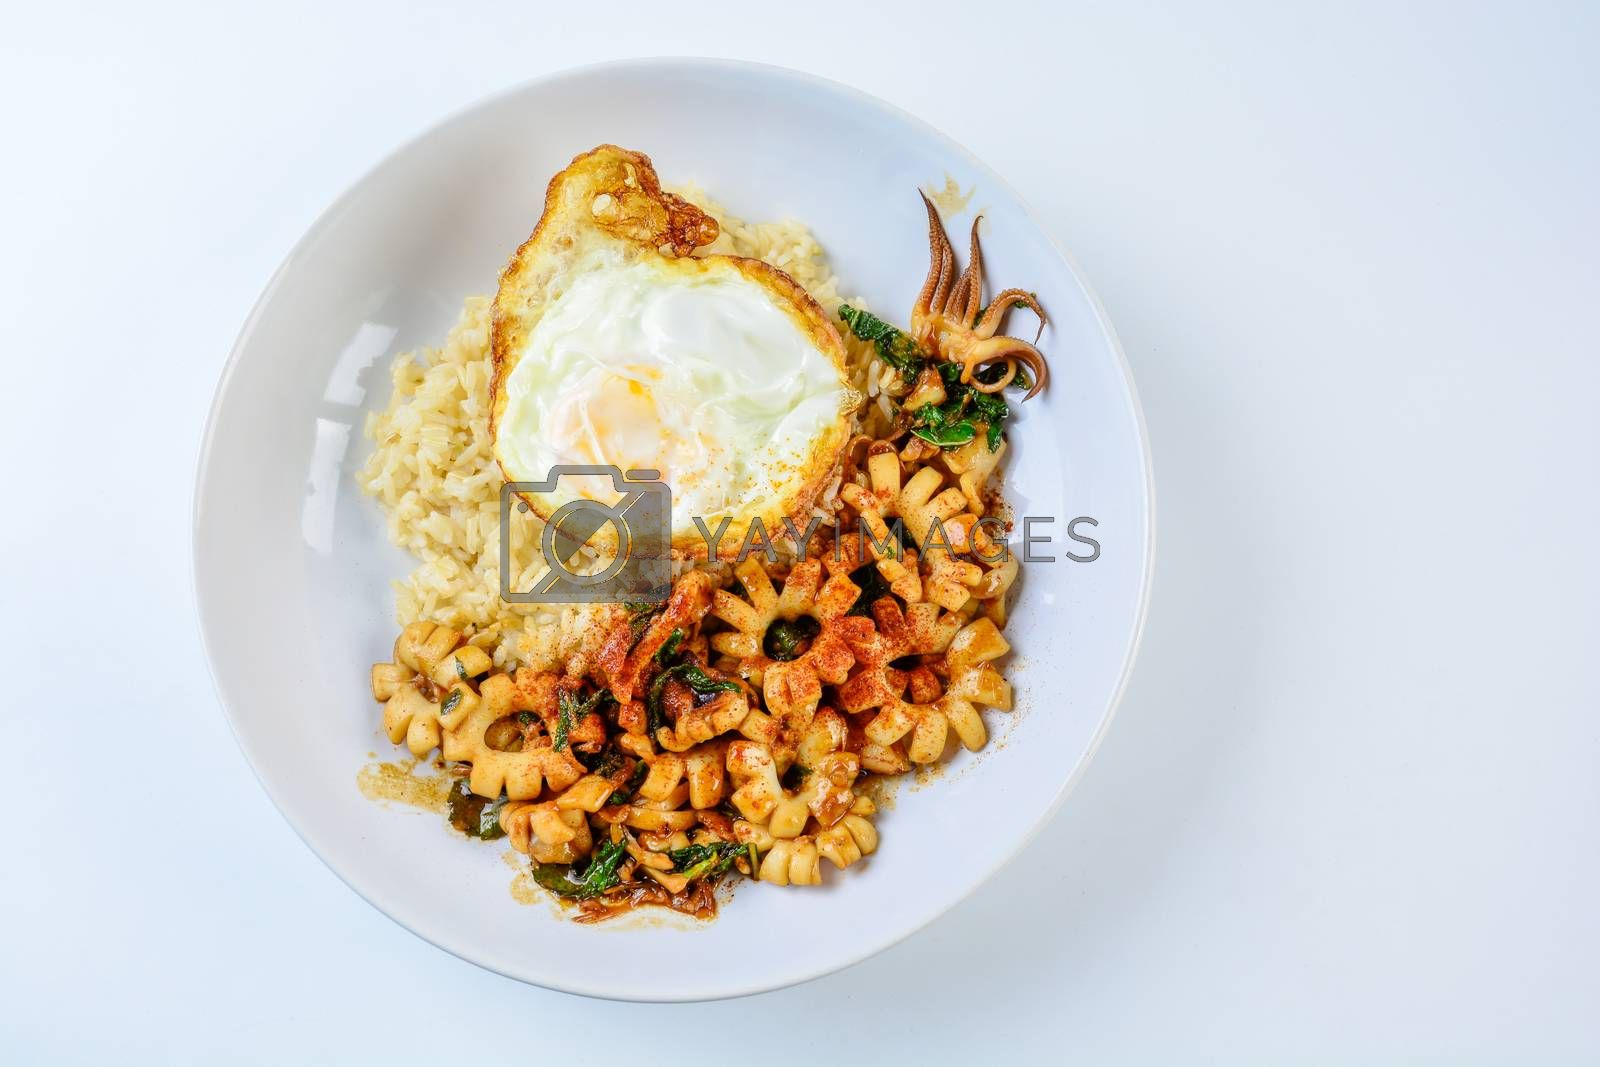 Spicy stir fried squid with basil leaves and chili, Sunny side u by YuiYuize